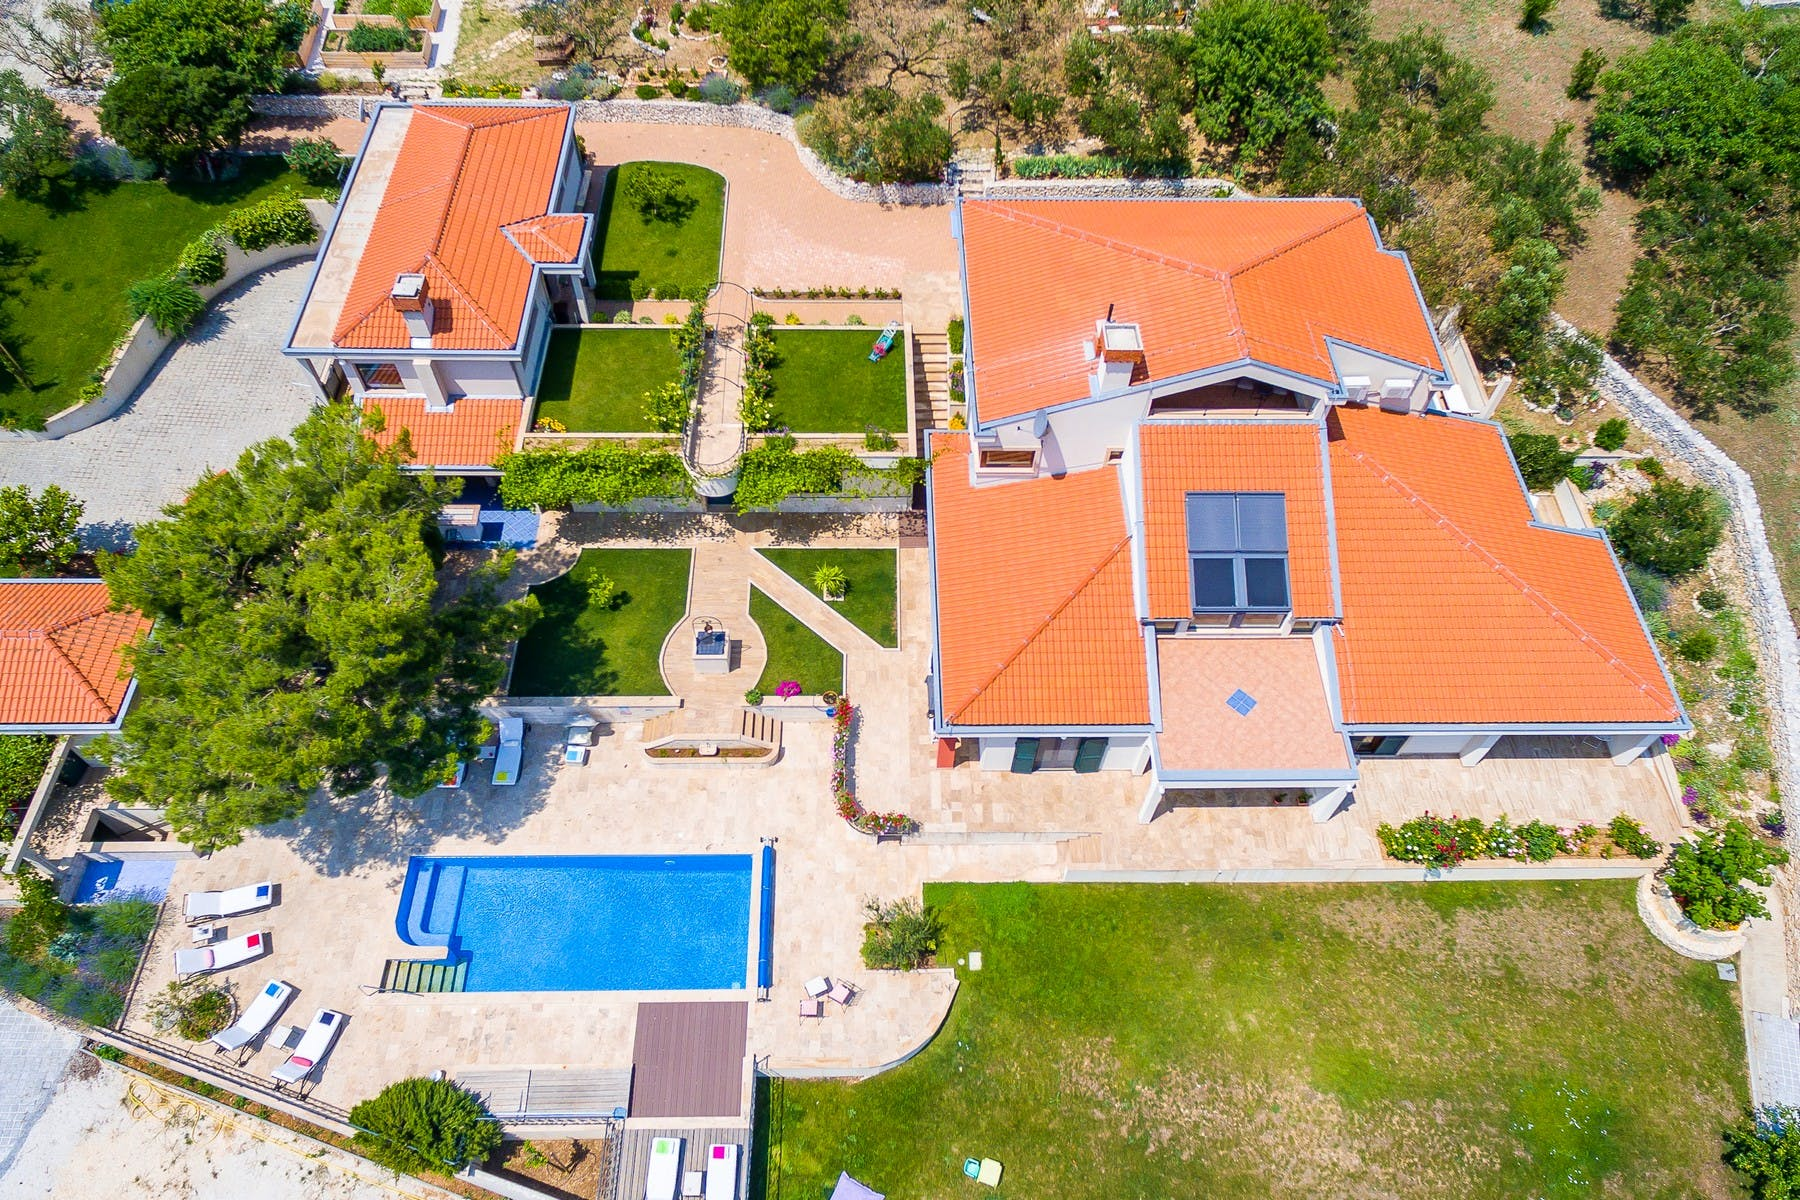 Panoramic view of the villa